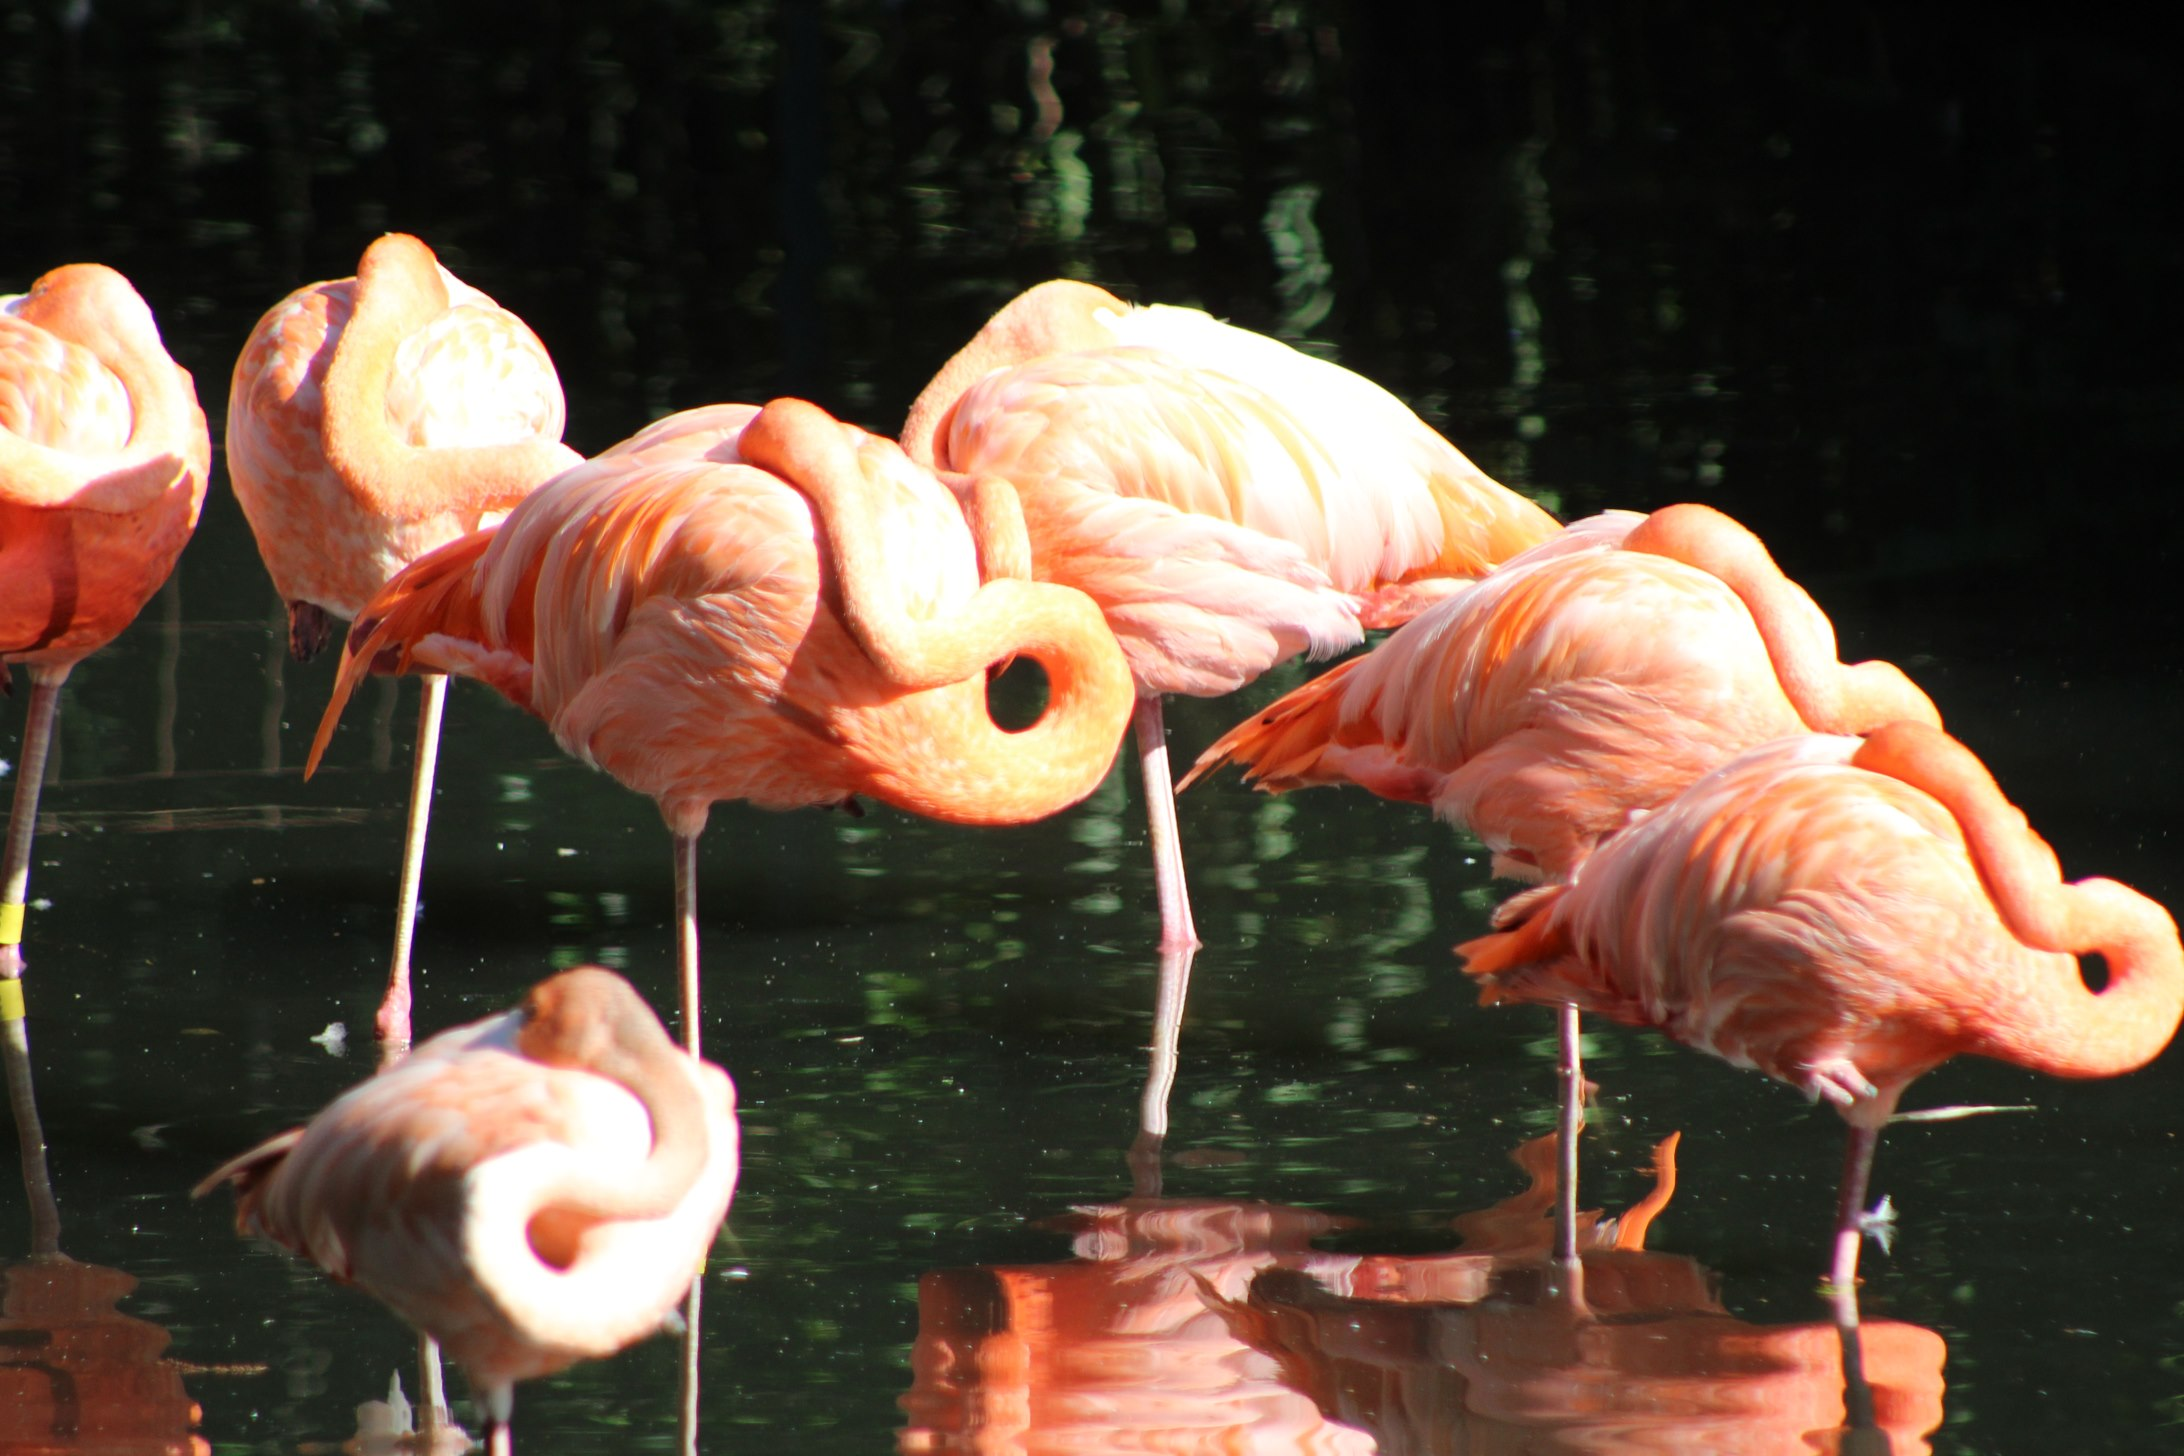 A Day at the Zoo 011.JPG